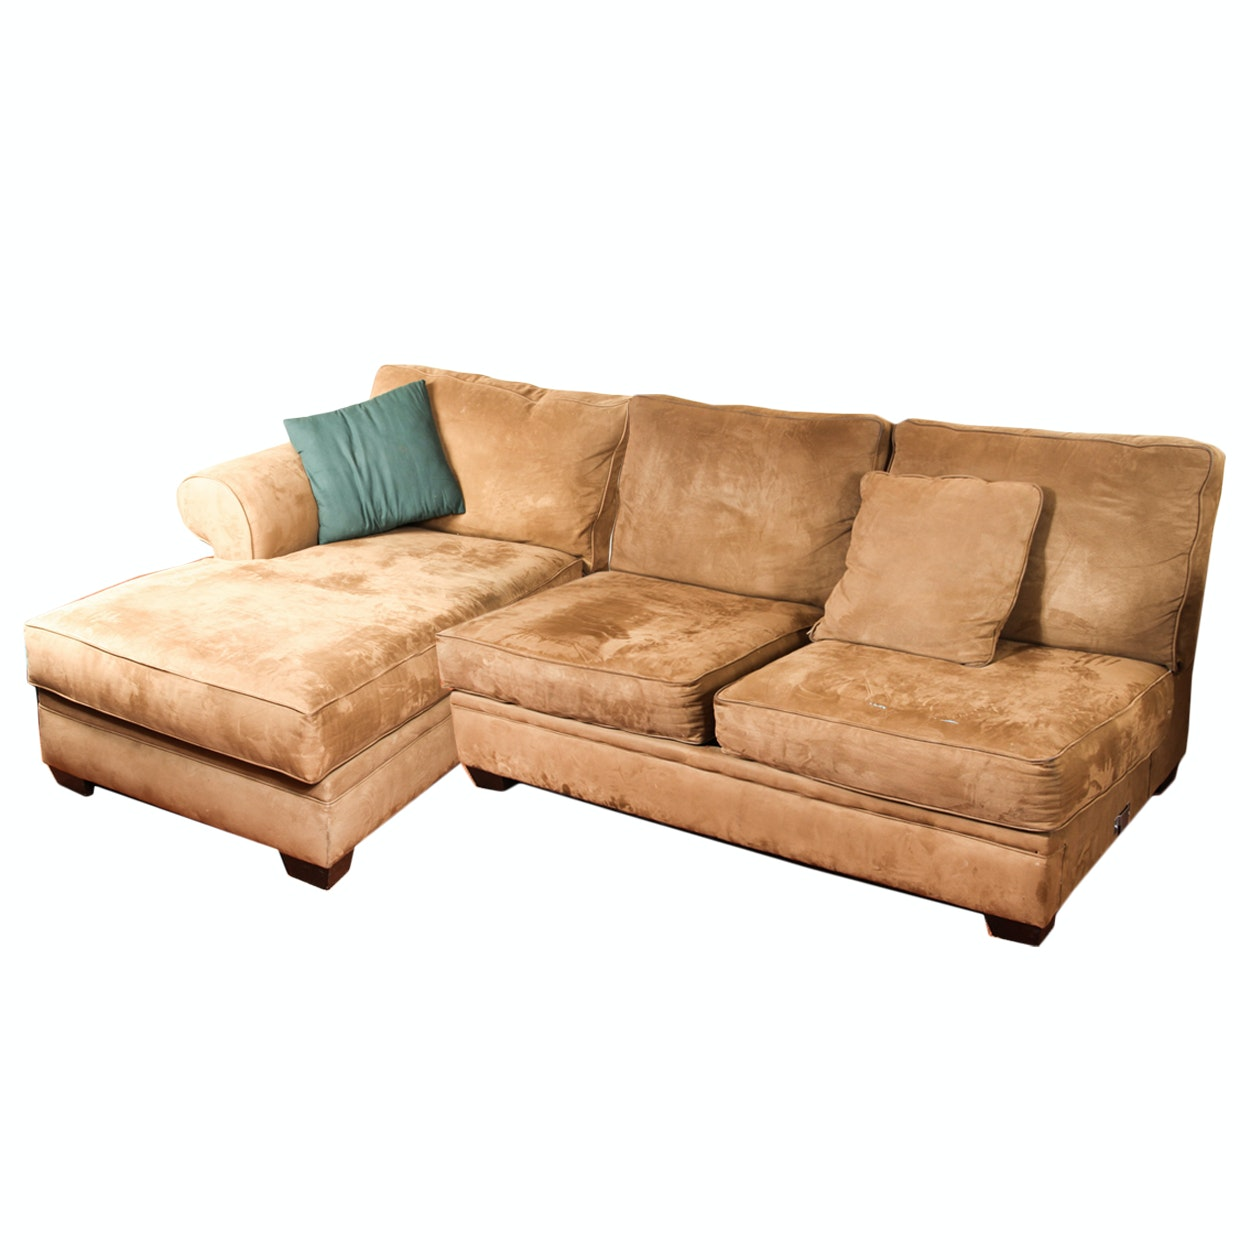 Tan Suede Sectional with Chaise